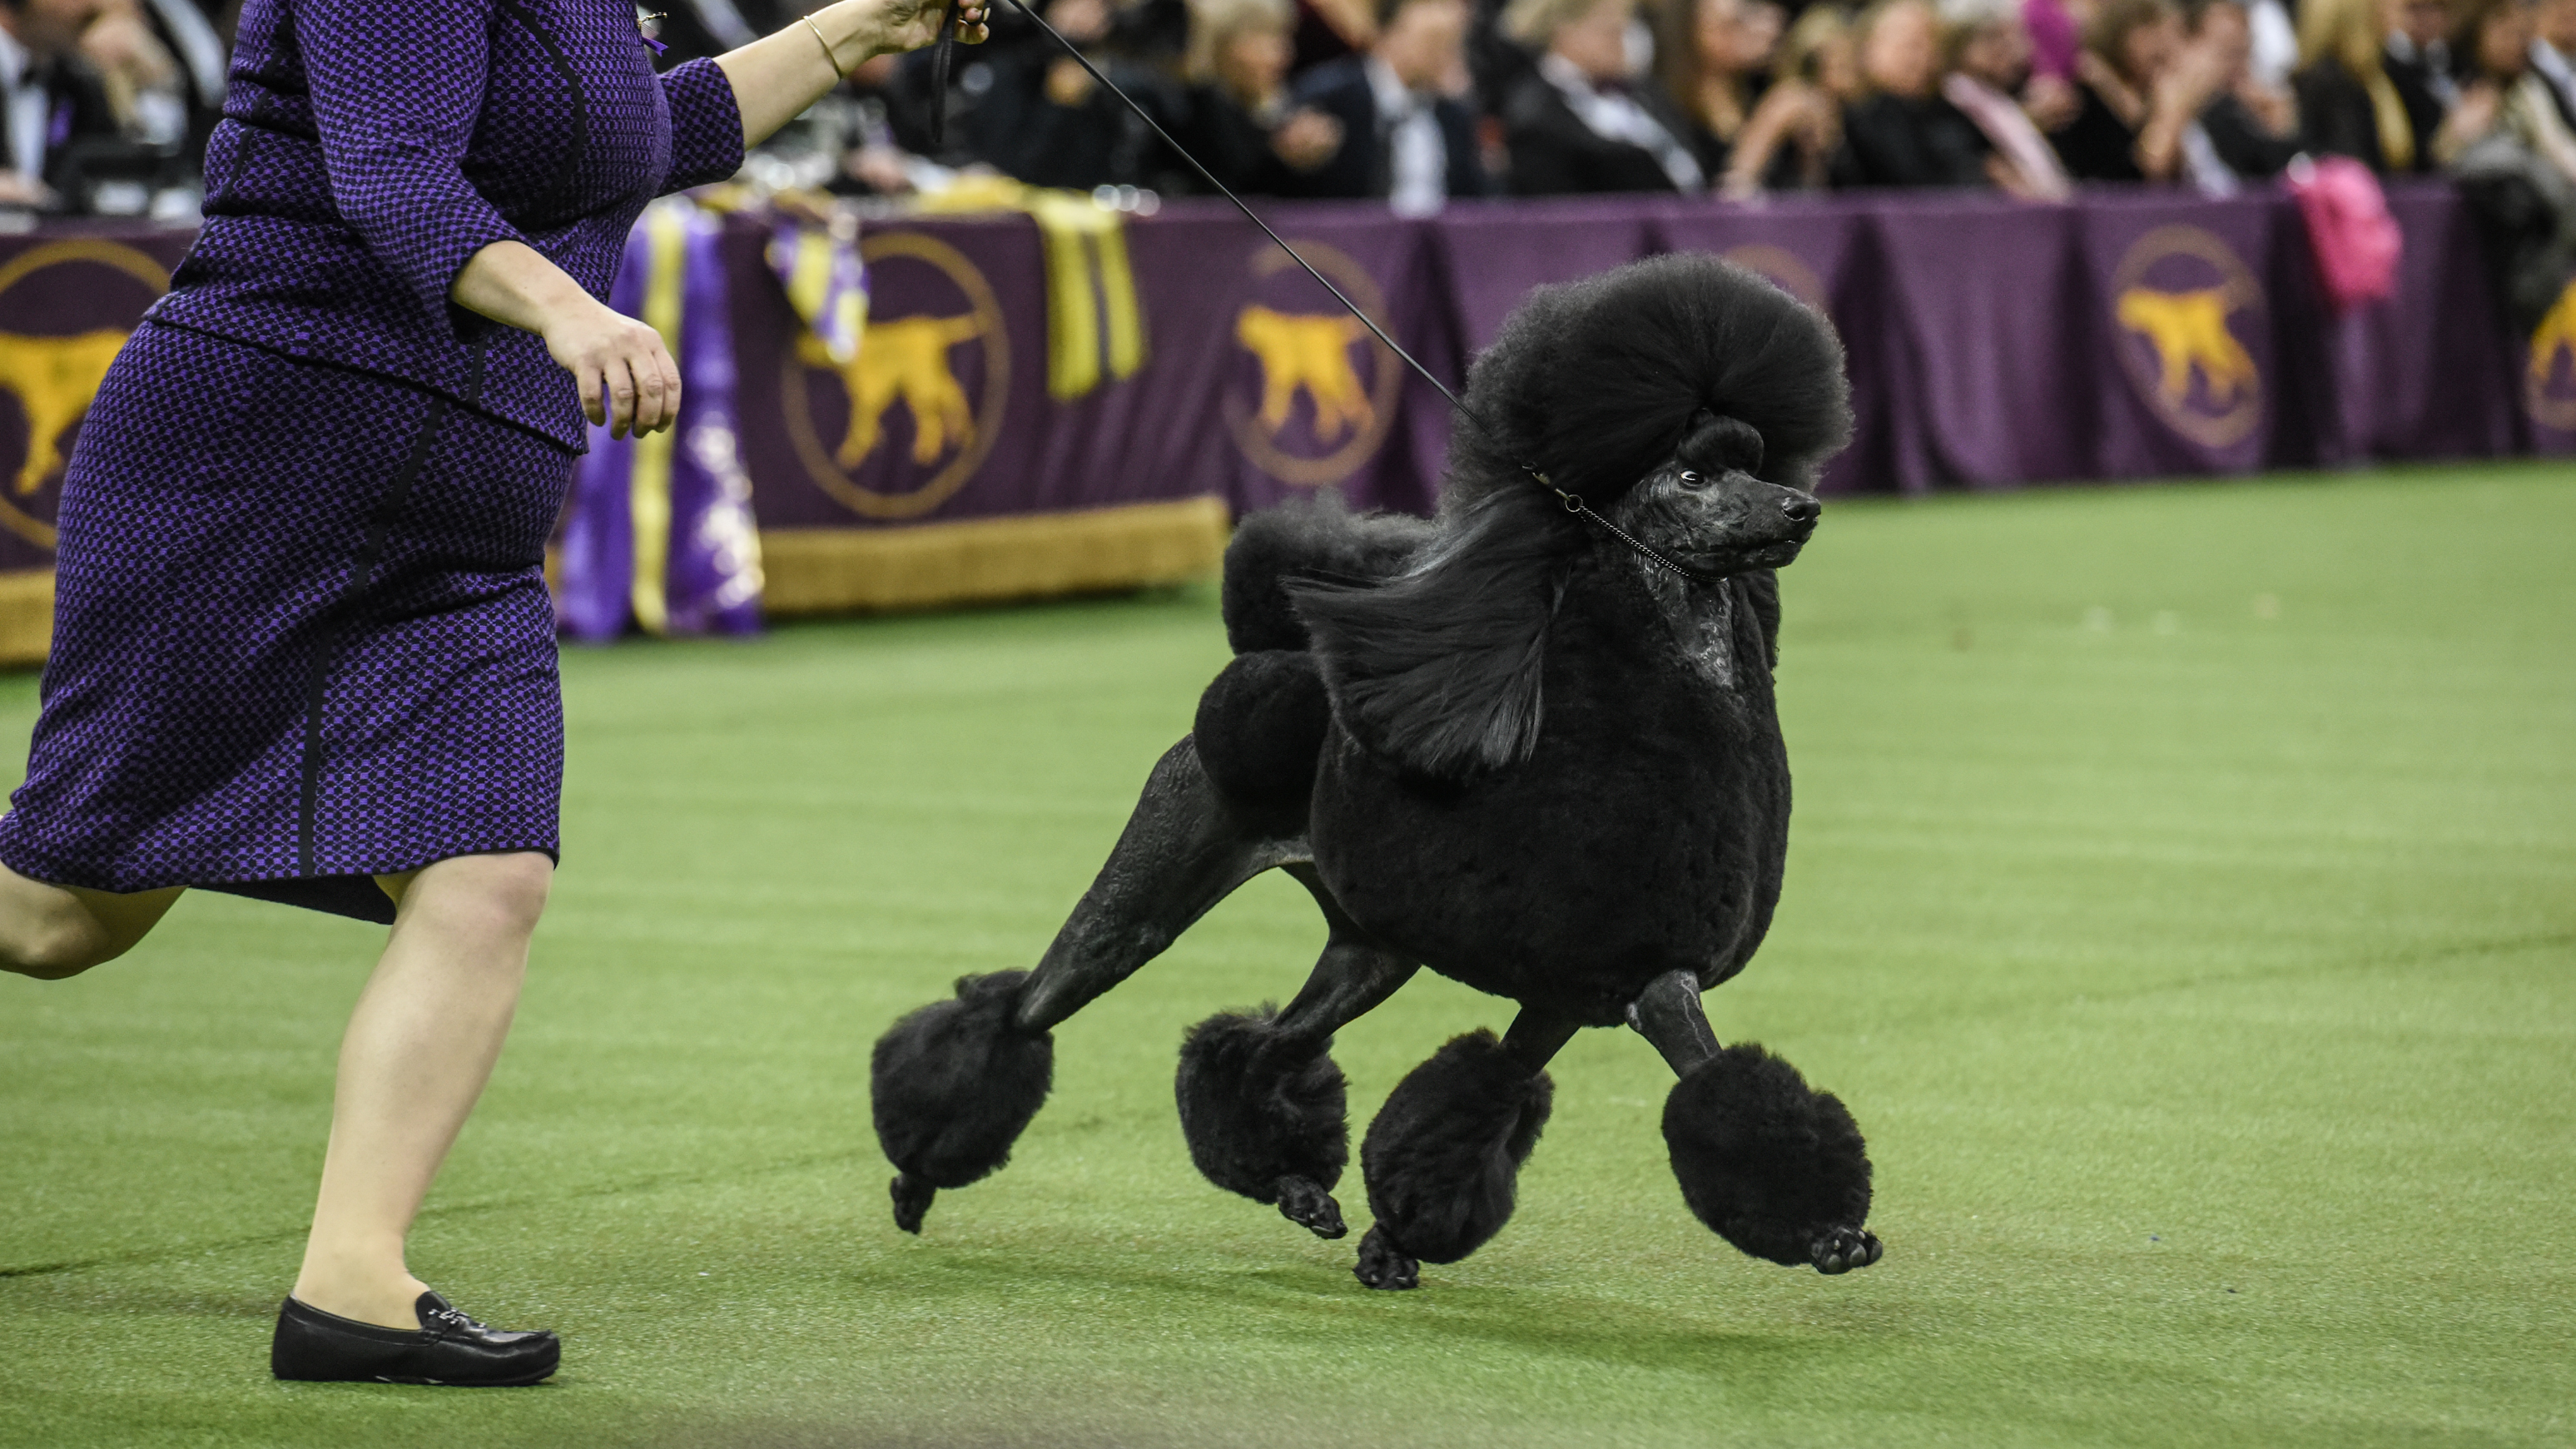 Siba is America's top dog after taking the Best in Show award Tuesday at the Westminster Kennel Club dog show in New York